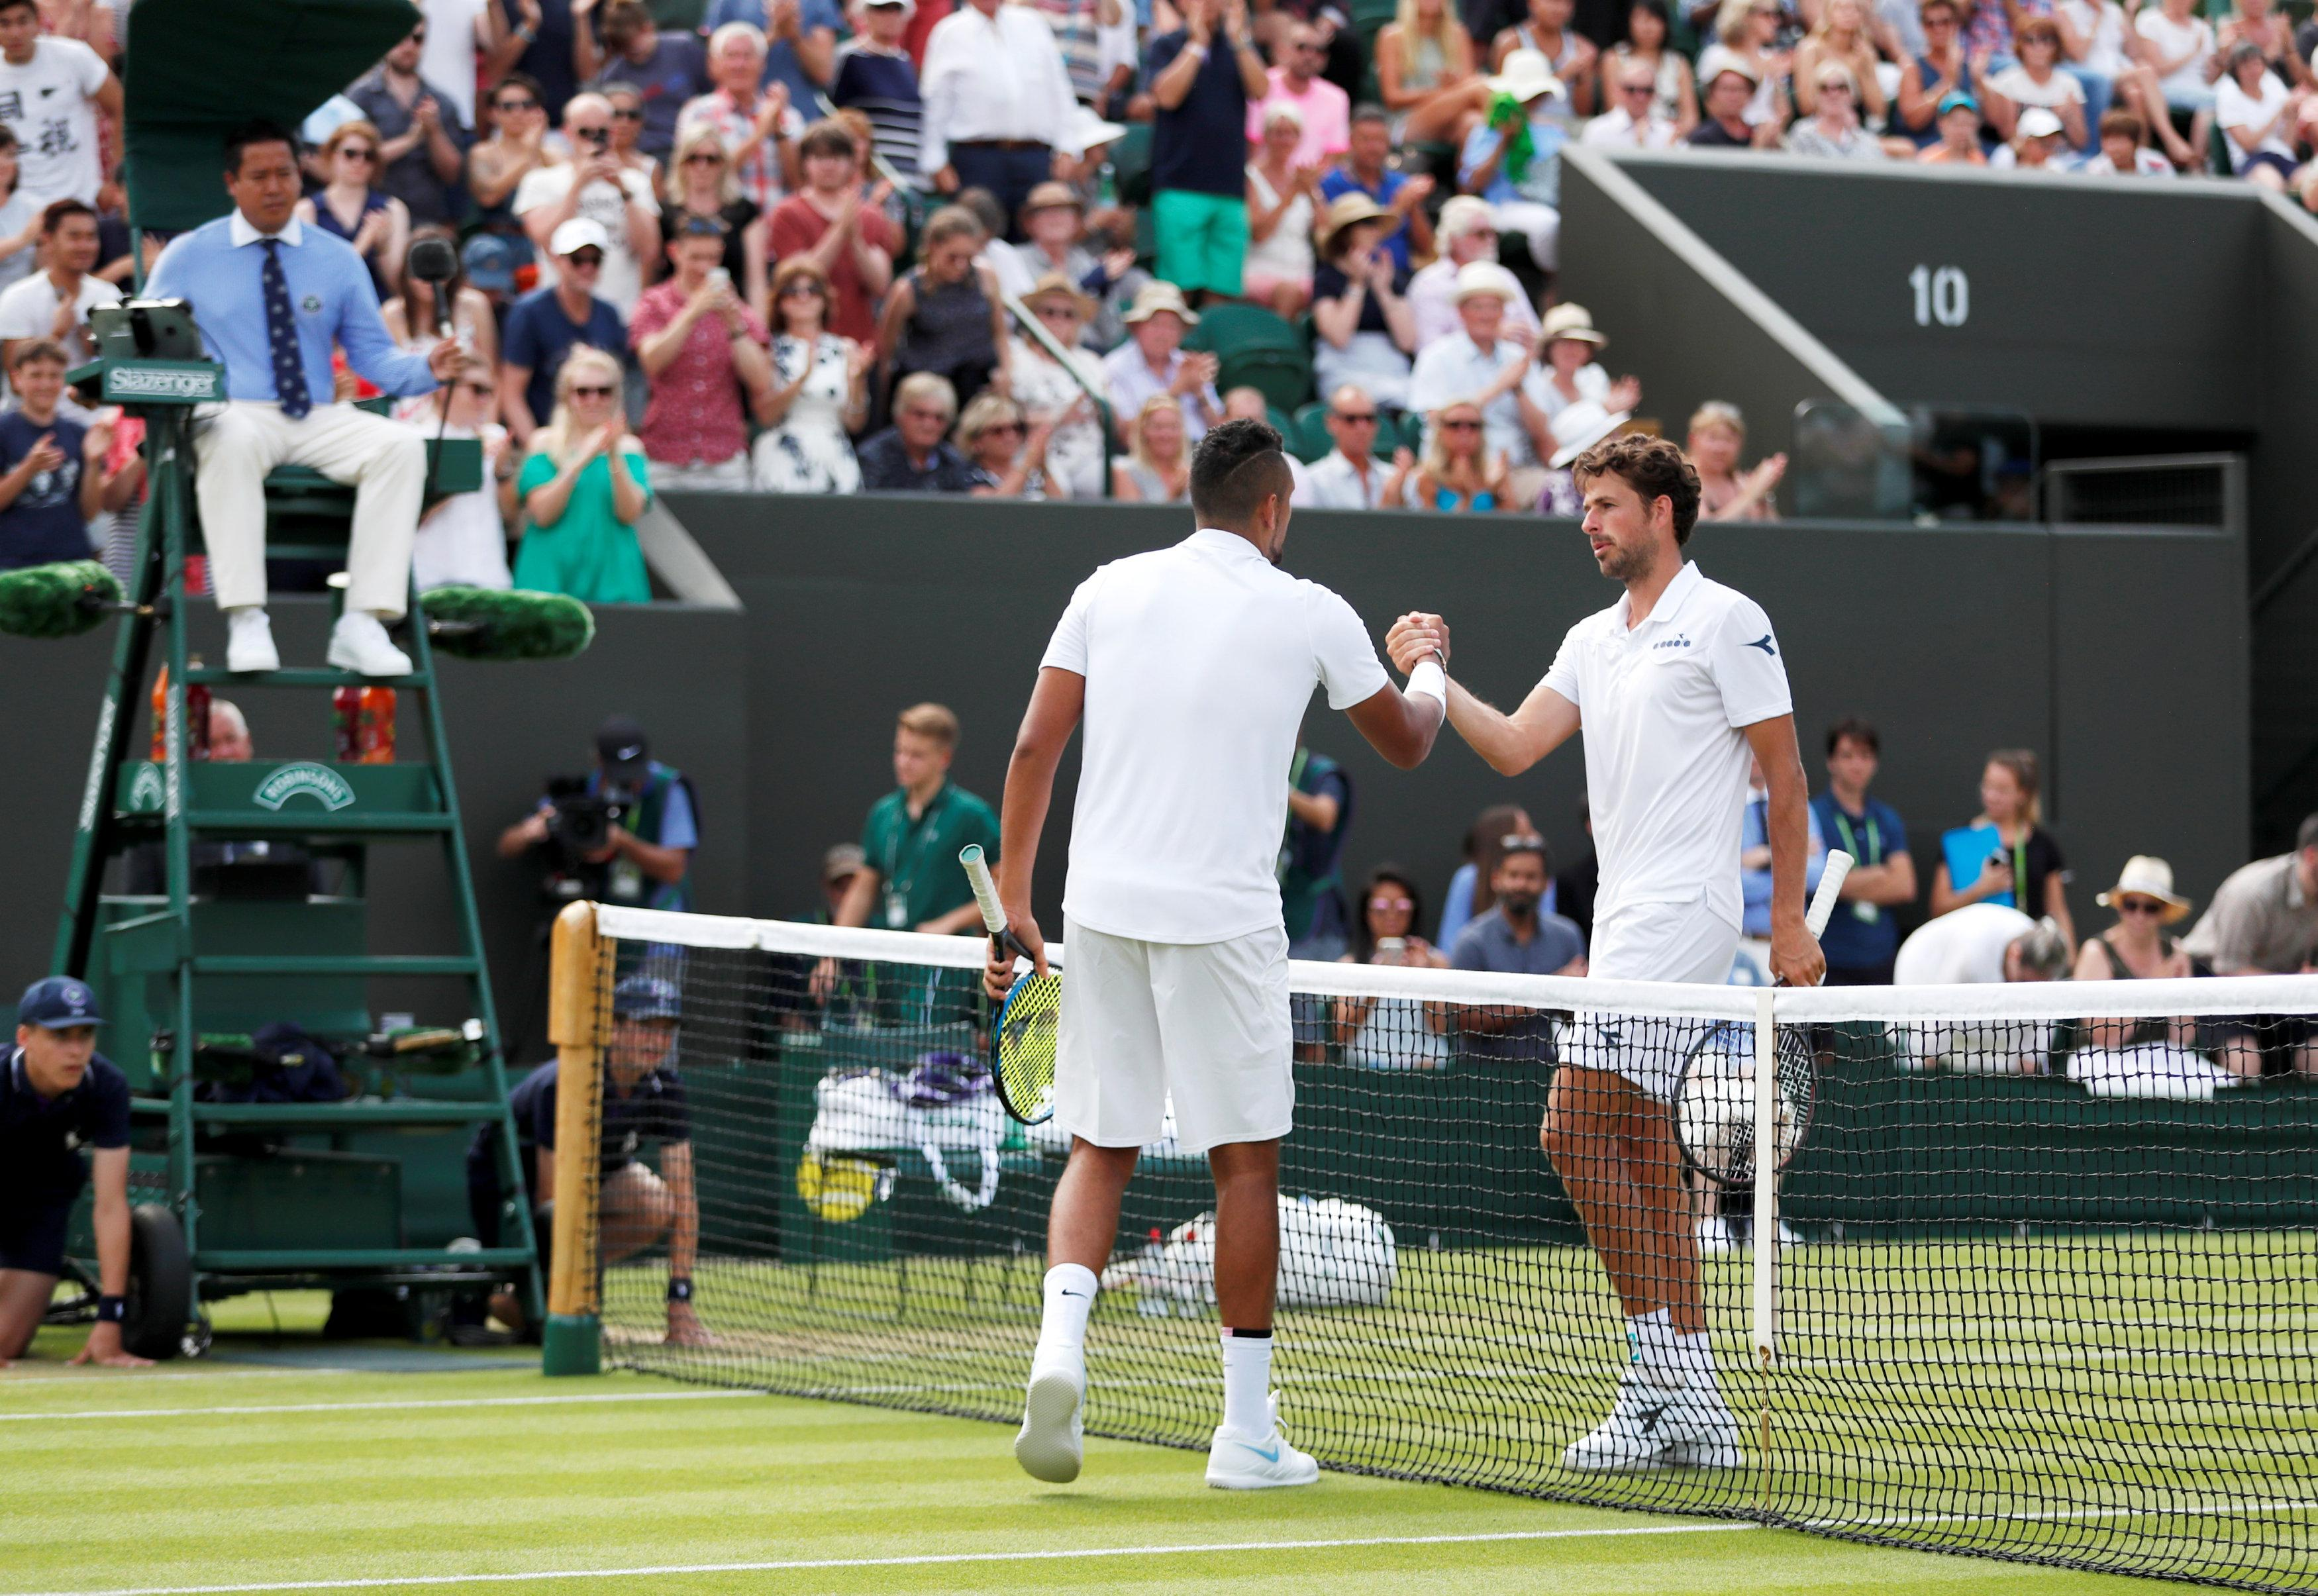 Kyrgios and Haase embrace at the end of their match on Court 3 at Wimbledon